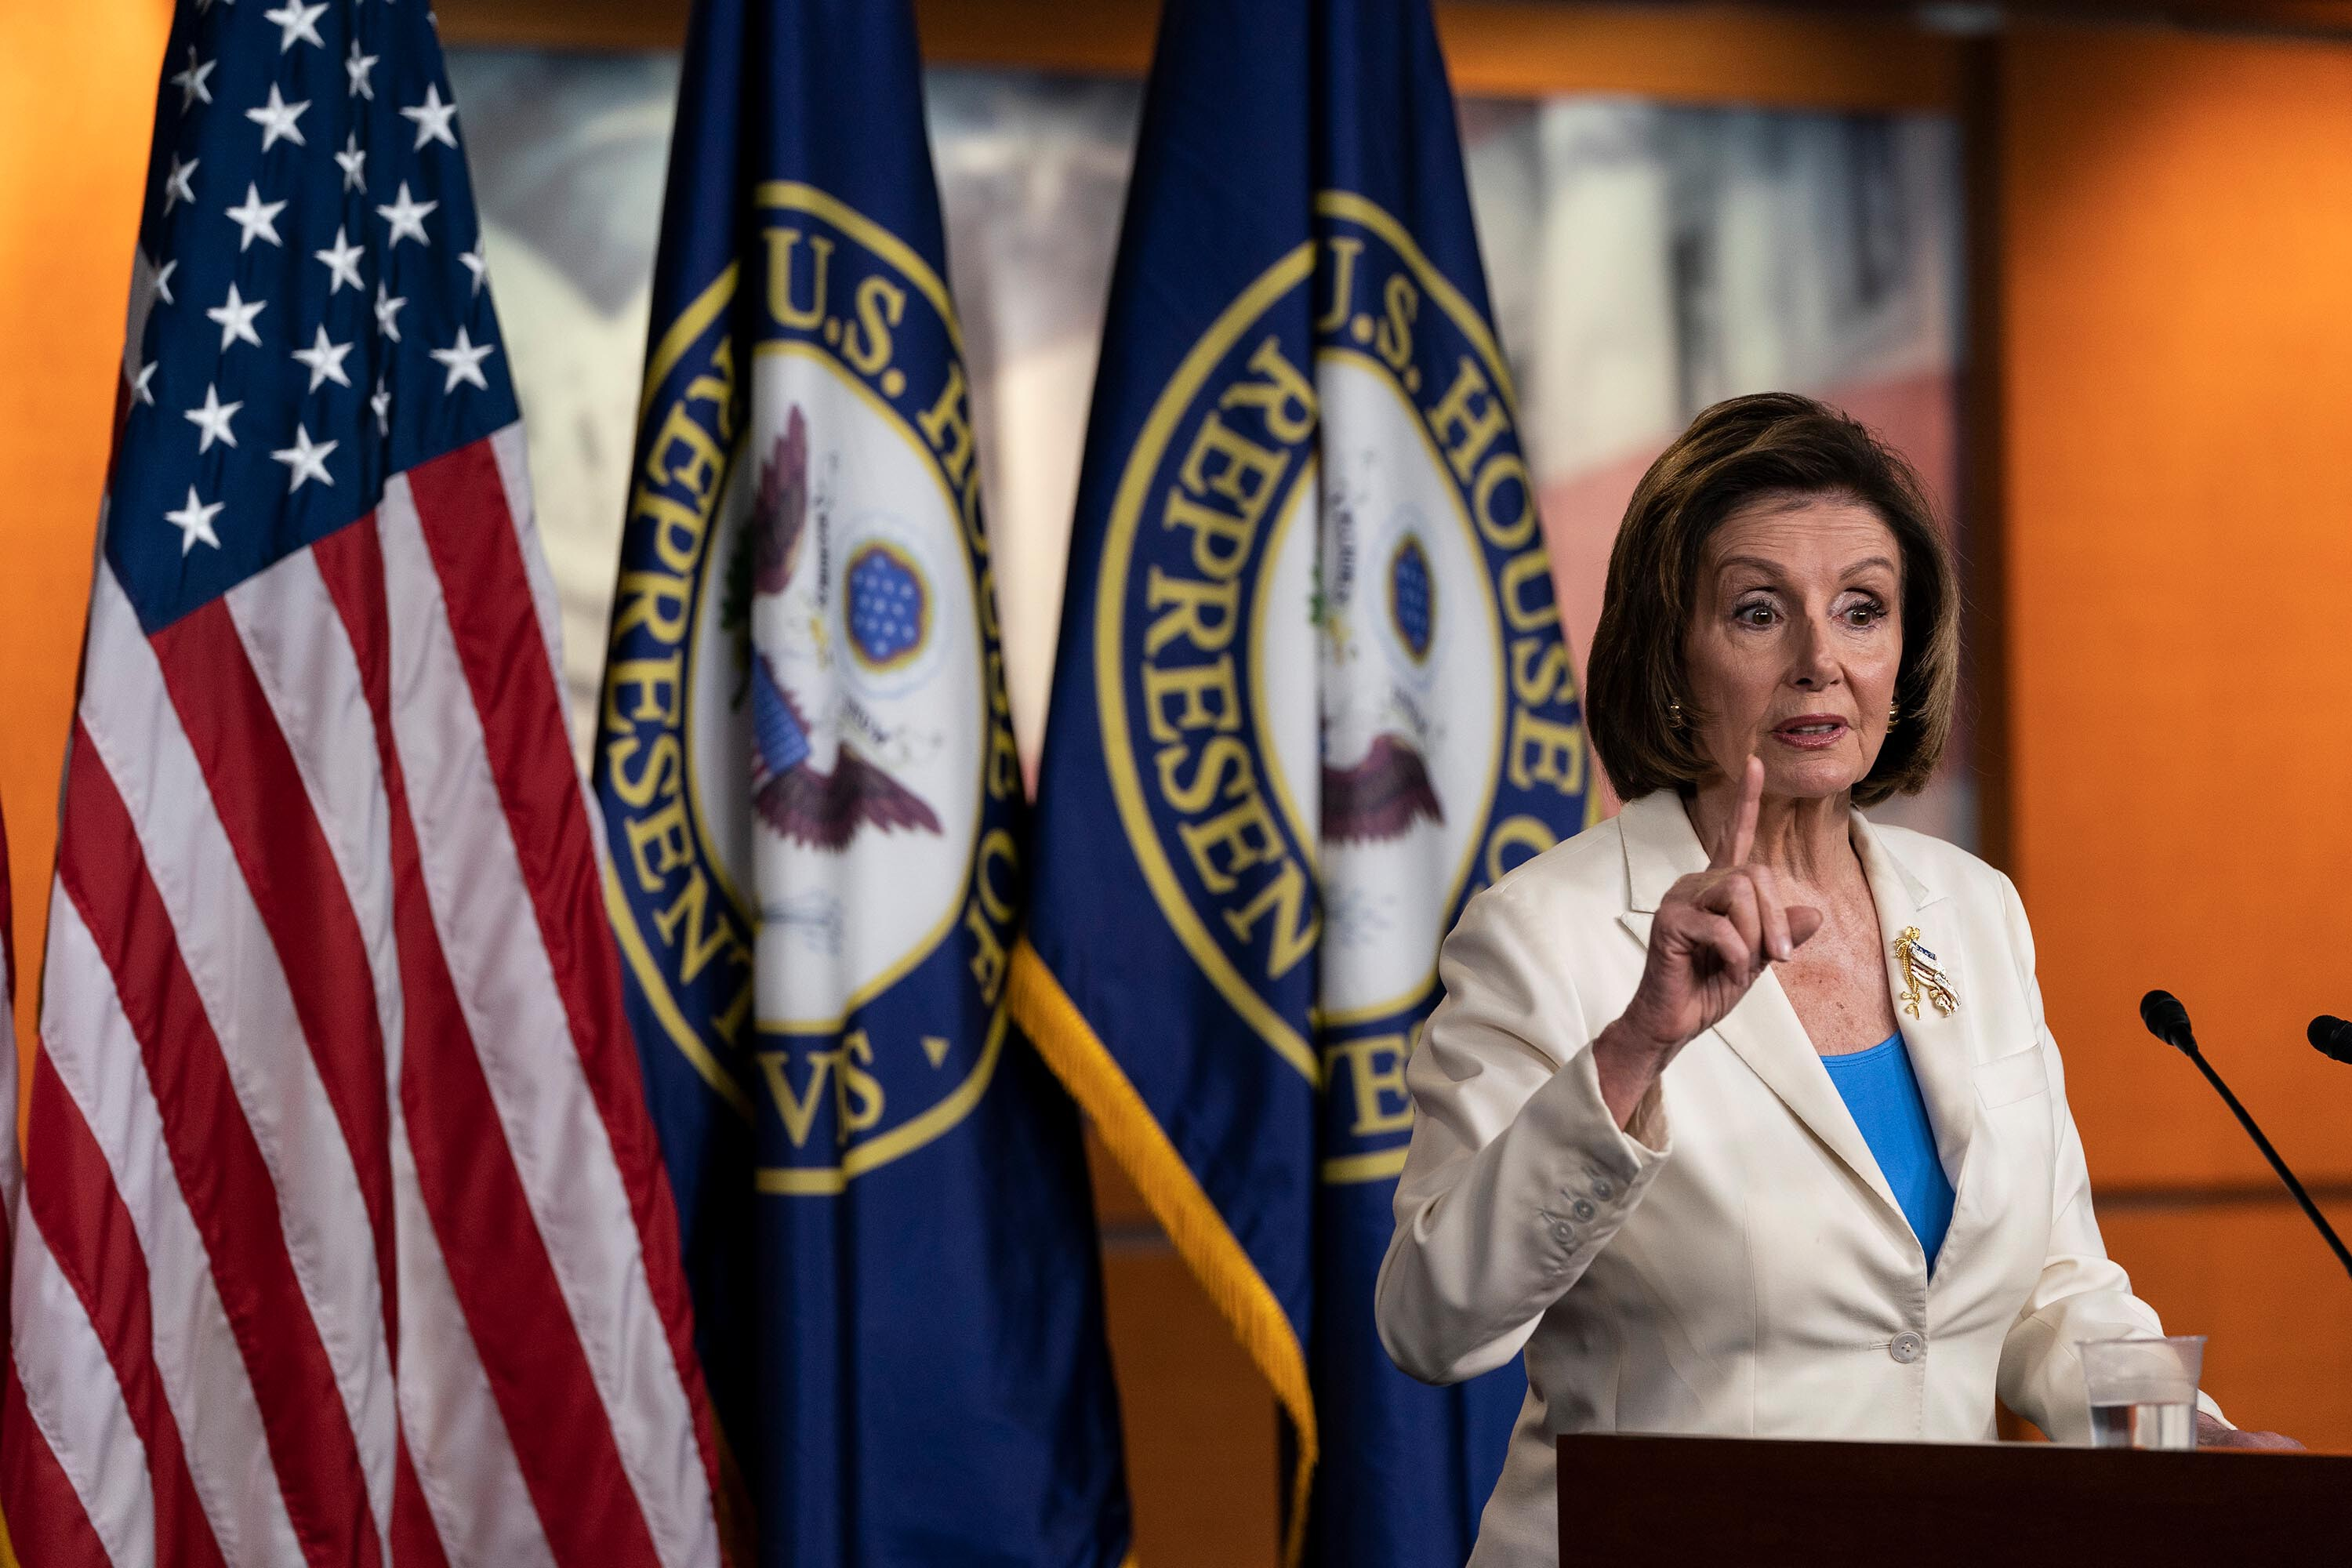 Democrats look to avoid 'circus' as they push forward with new select committee